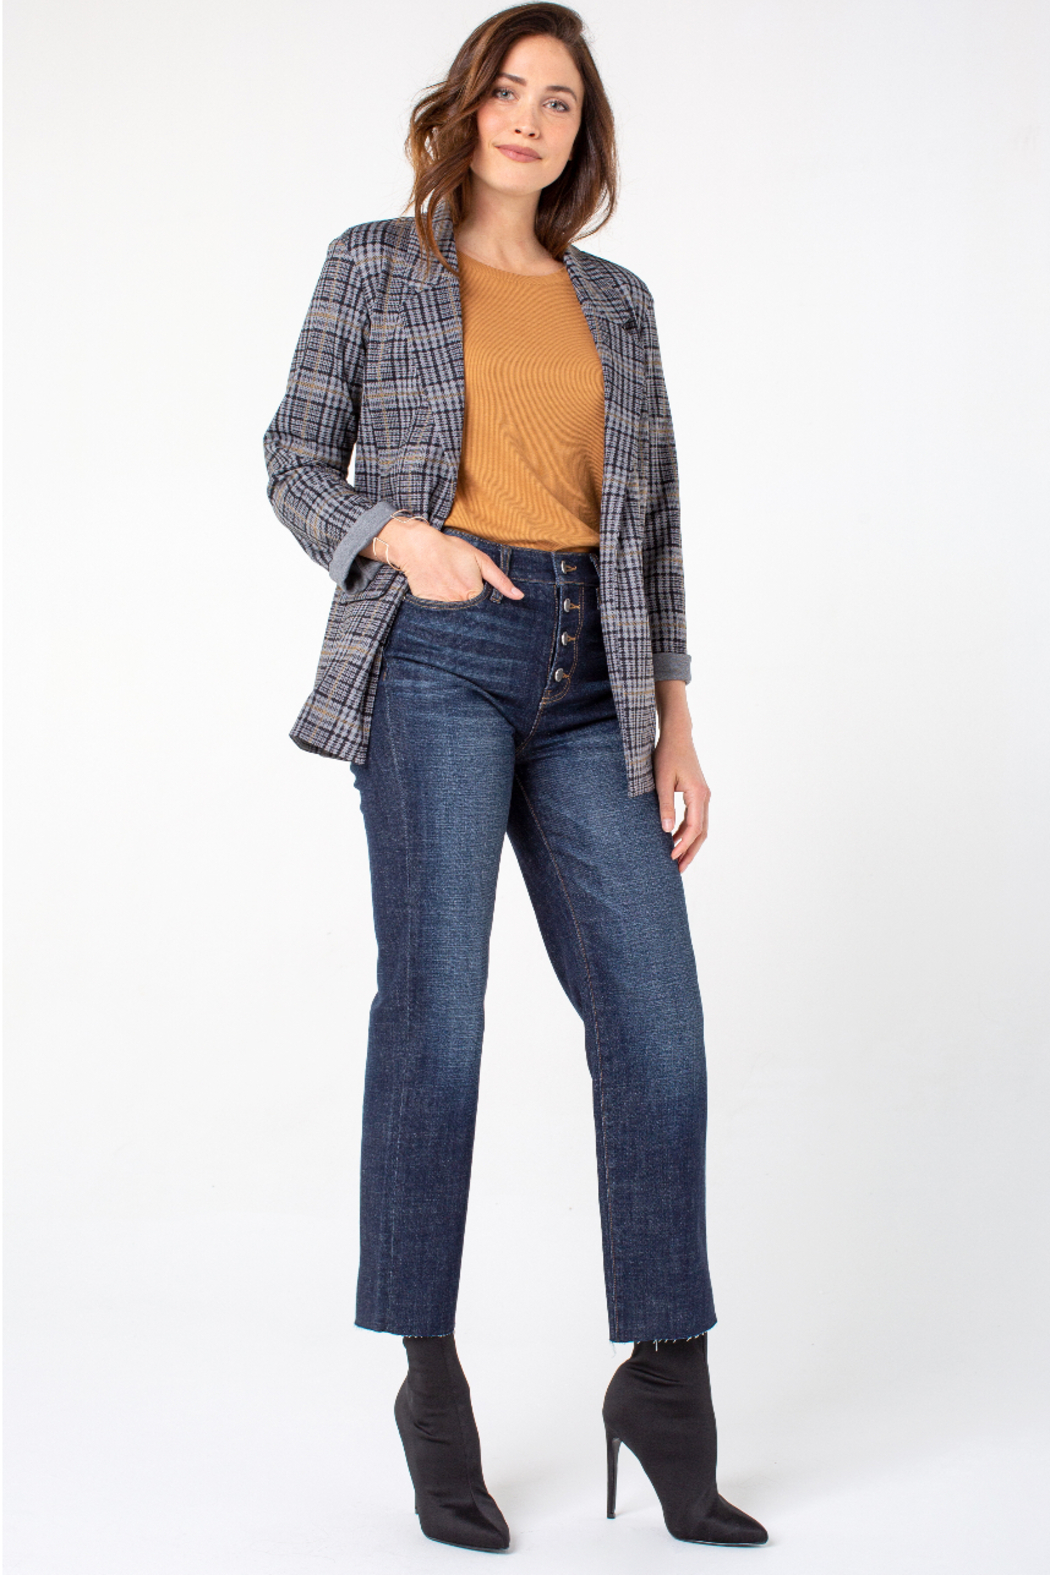 Liverpool  Hi-Rise Crop Straight Cut Jeans - Side Cropped Image